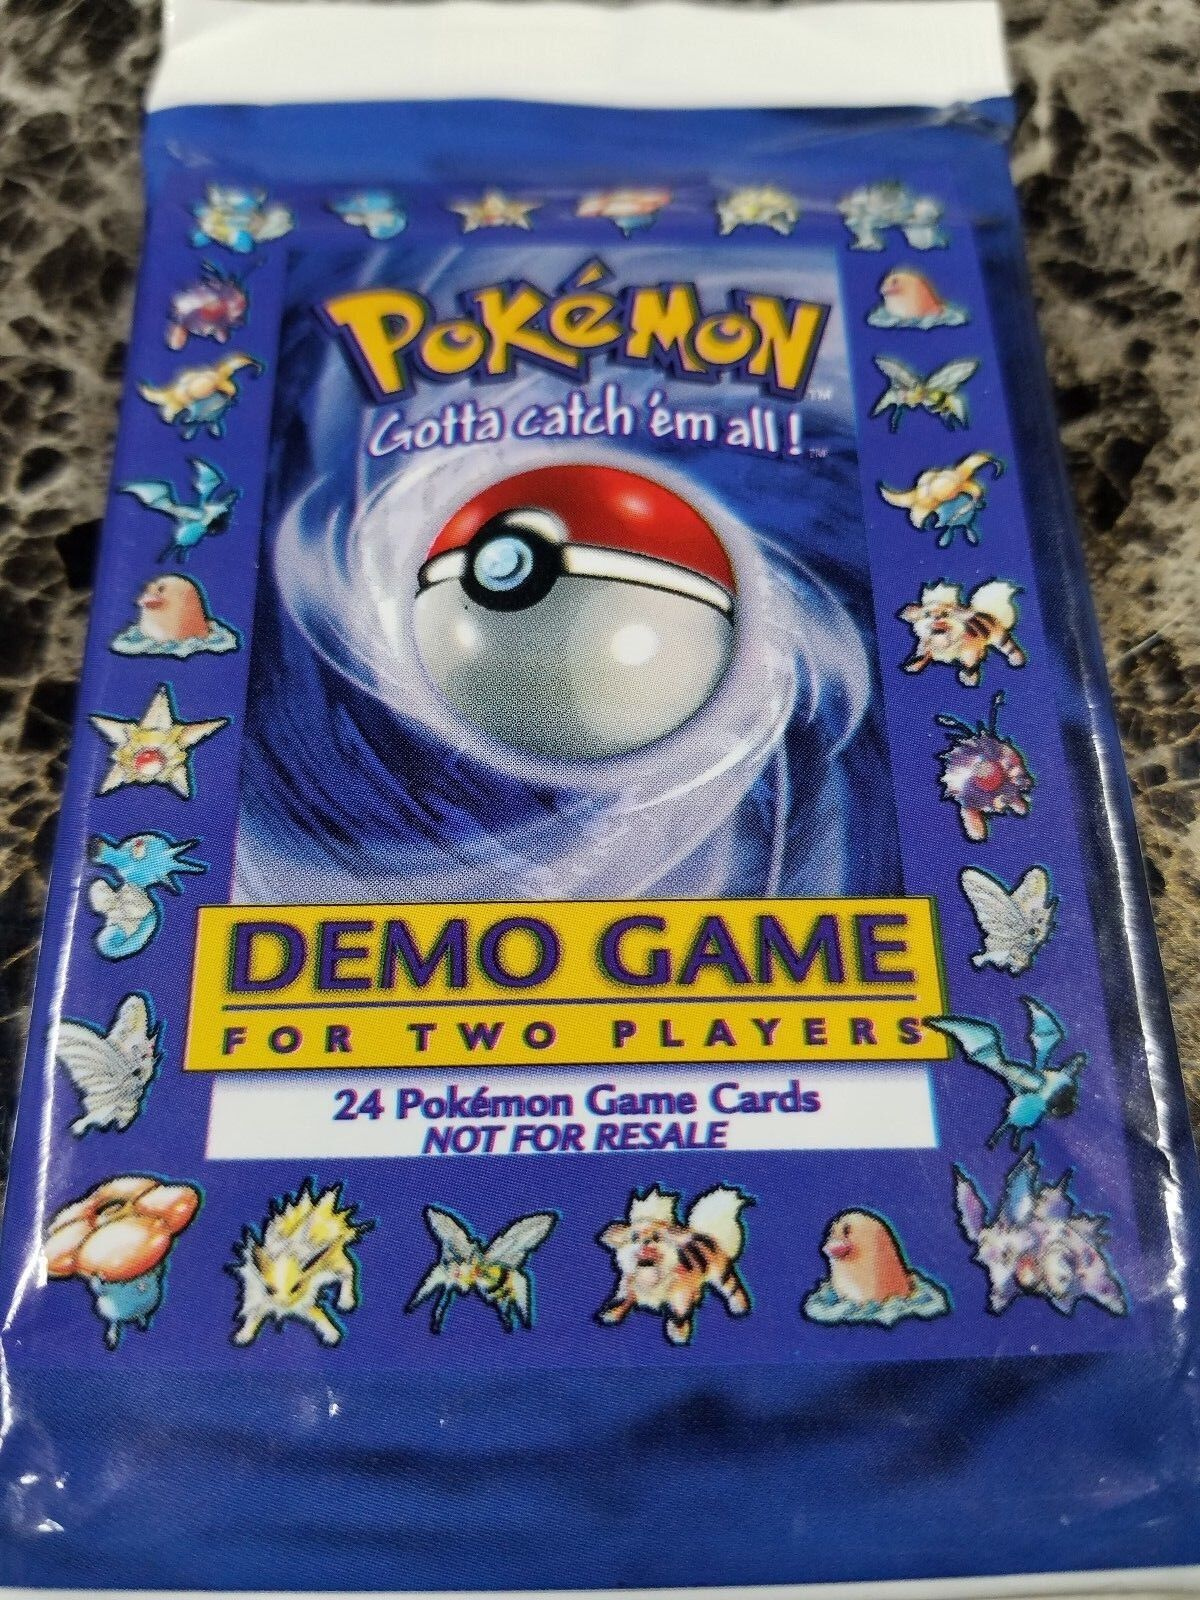 Paquete de demostración de Pokemon Sellado Original Pokemon Booster utilizado para la promoción Trading Card Game